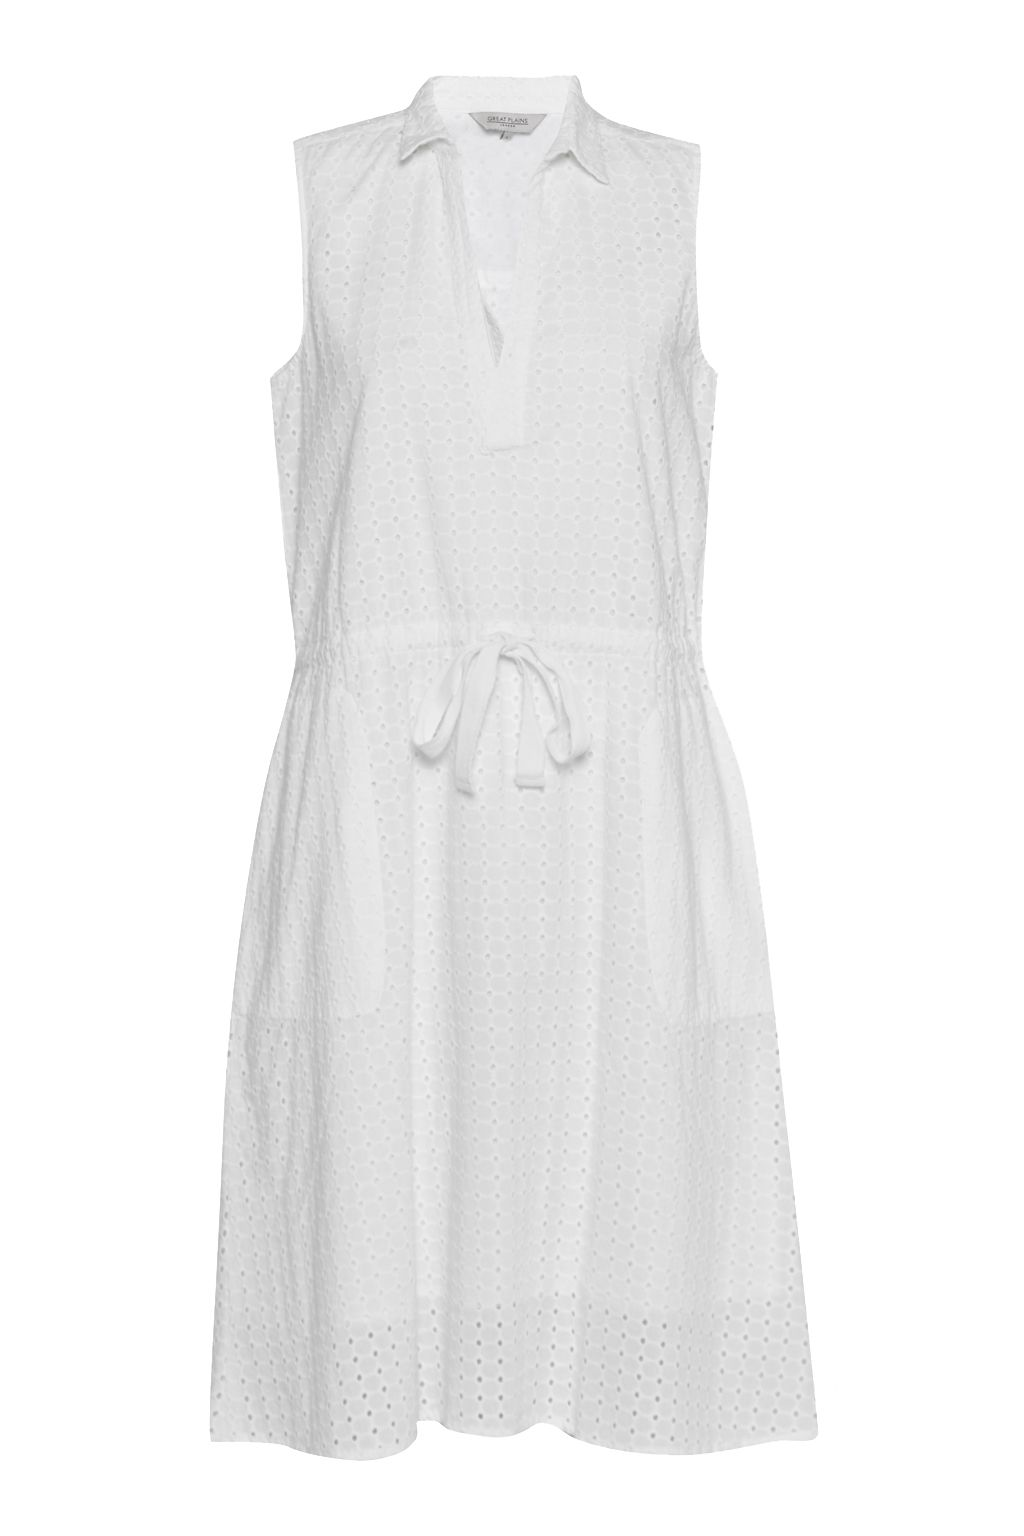 Great Plains Whitby Embroidered Shirt Dress, White